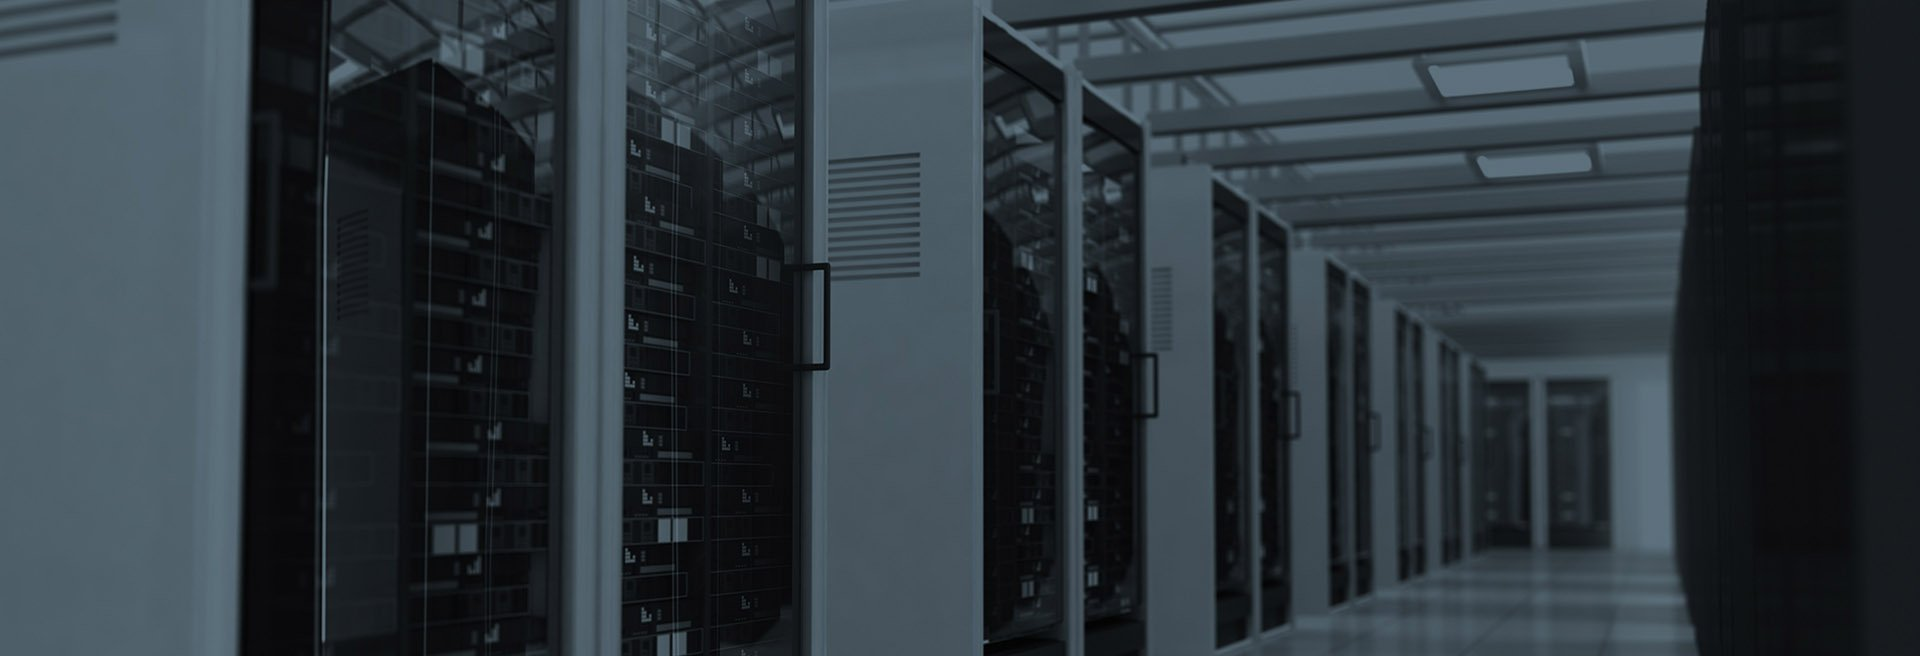 5 Ways to Maximize The Efficiency of Your Data Center